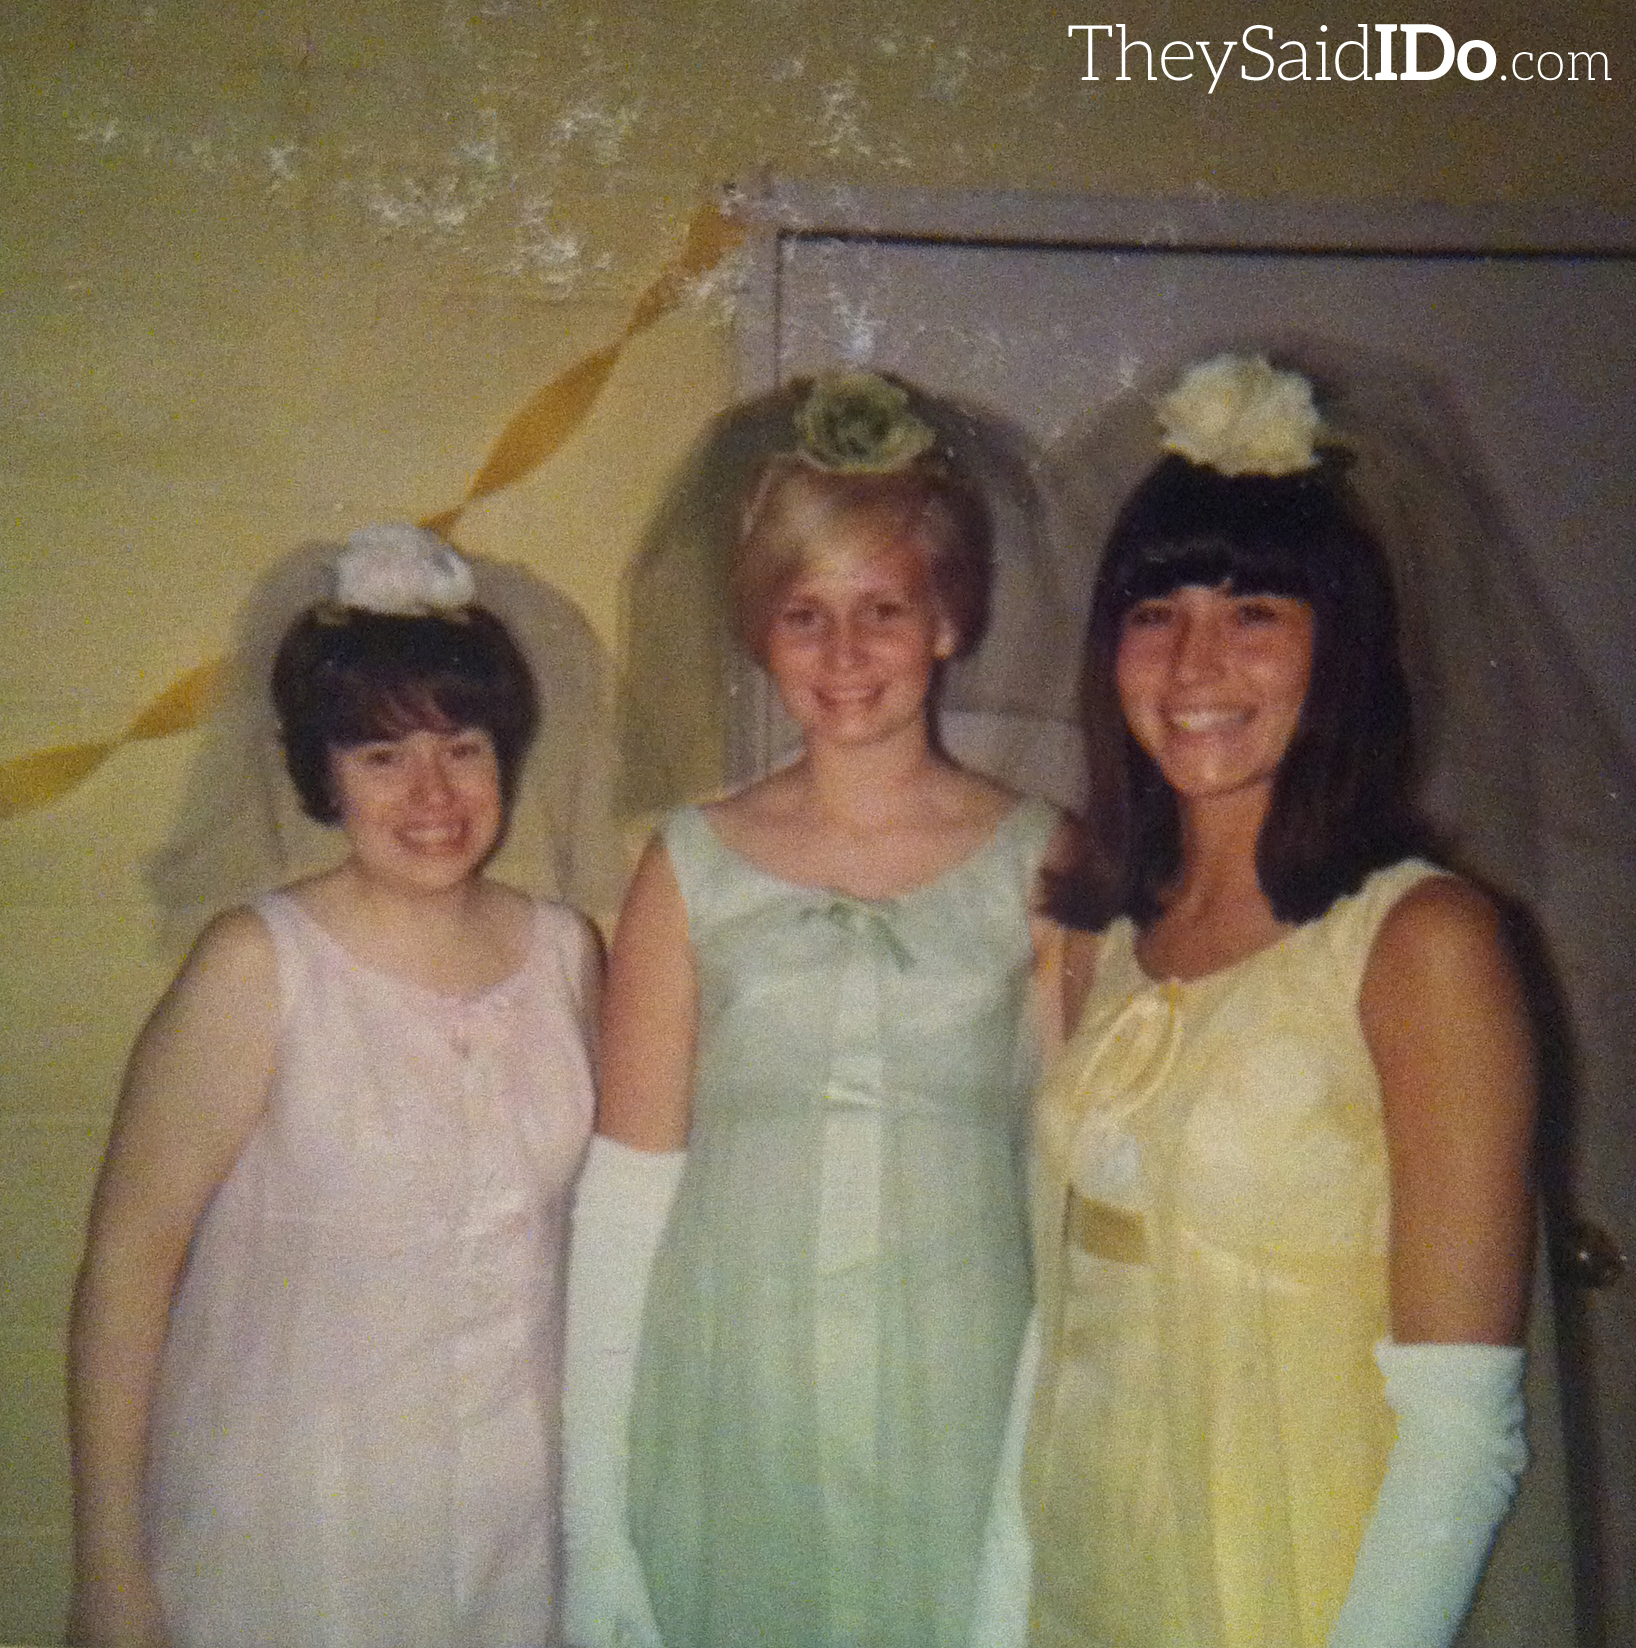 Larry & Dana - 1967 Bridesmaids {TheySaidIDo.com}